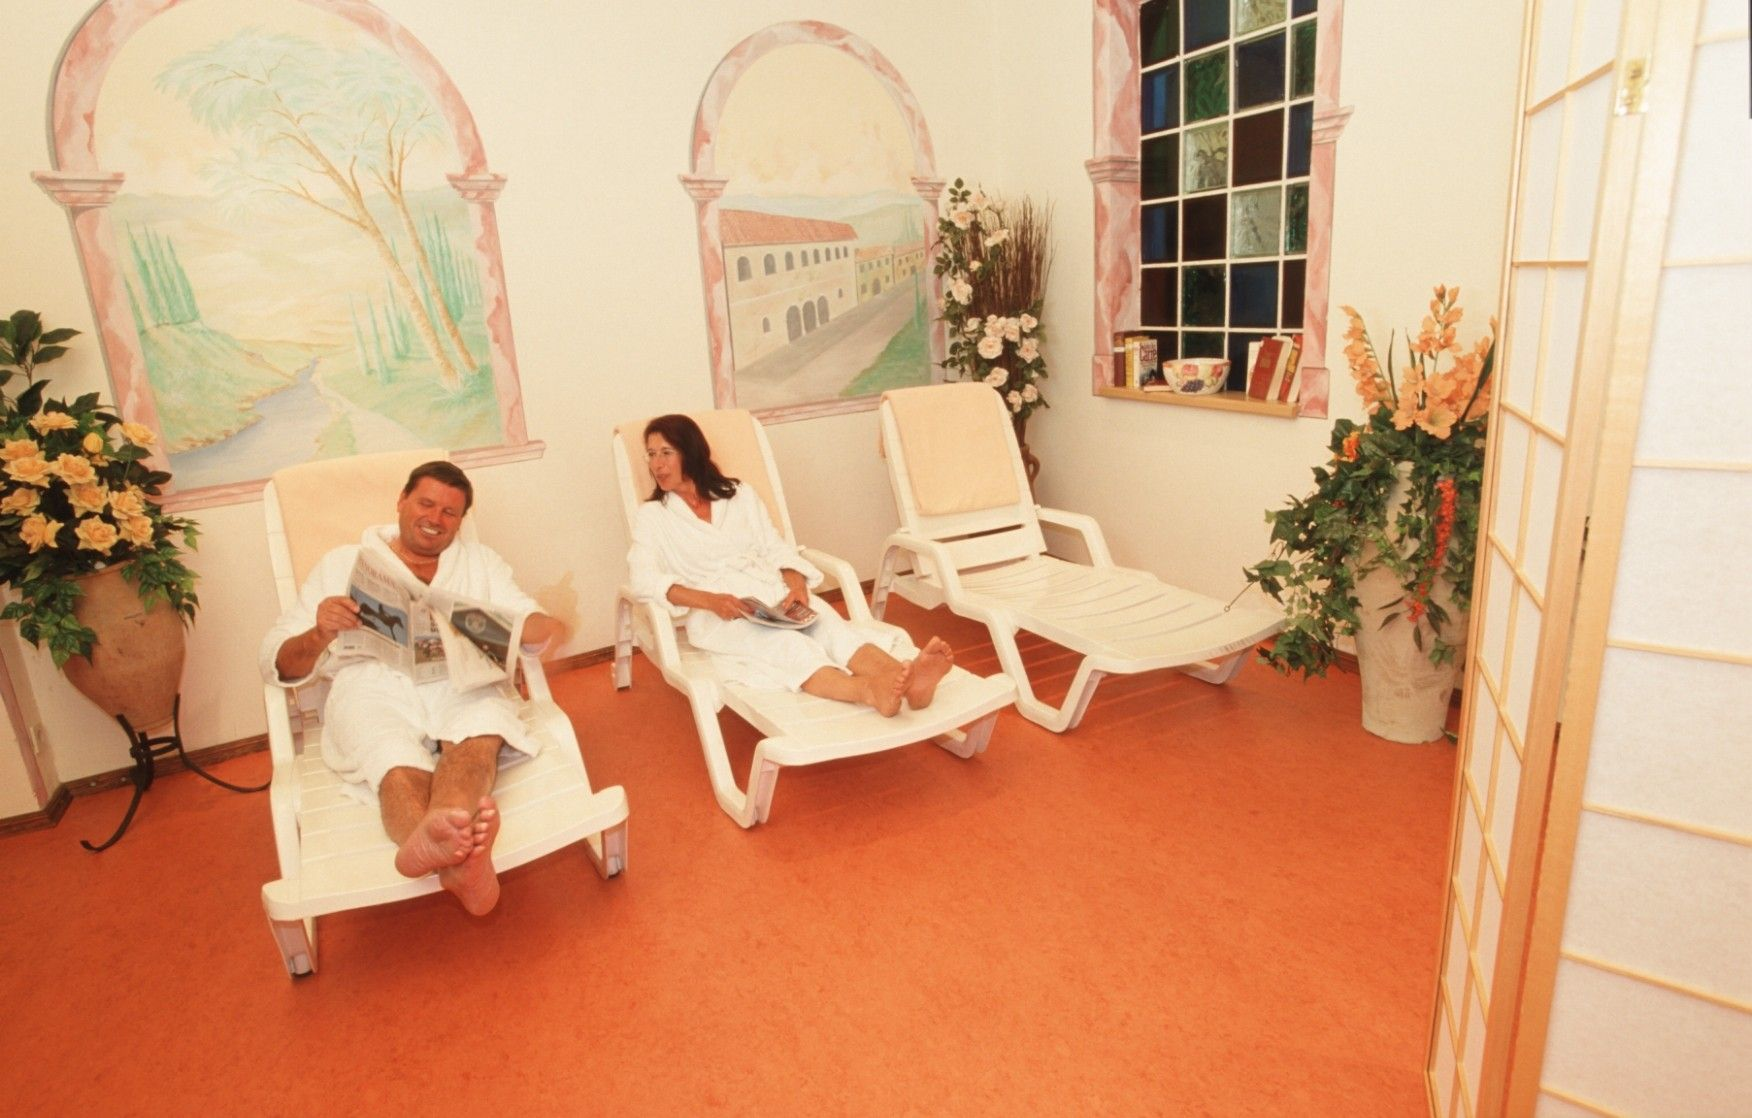 Hotel Alber relaxation room